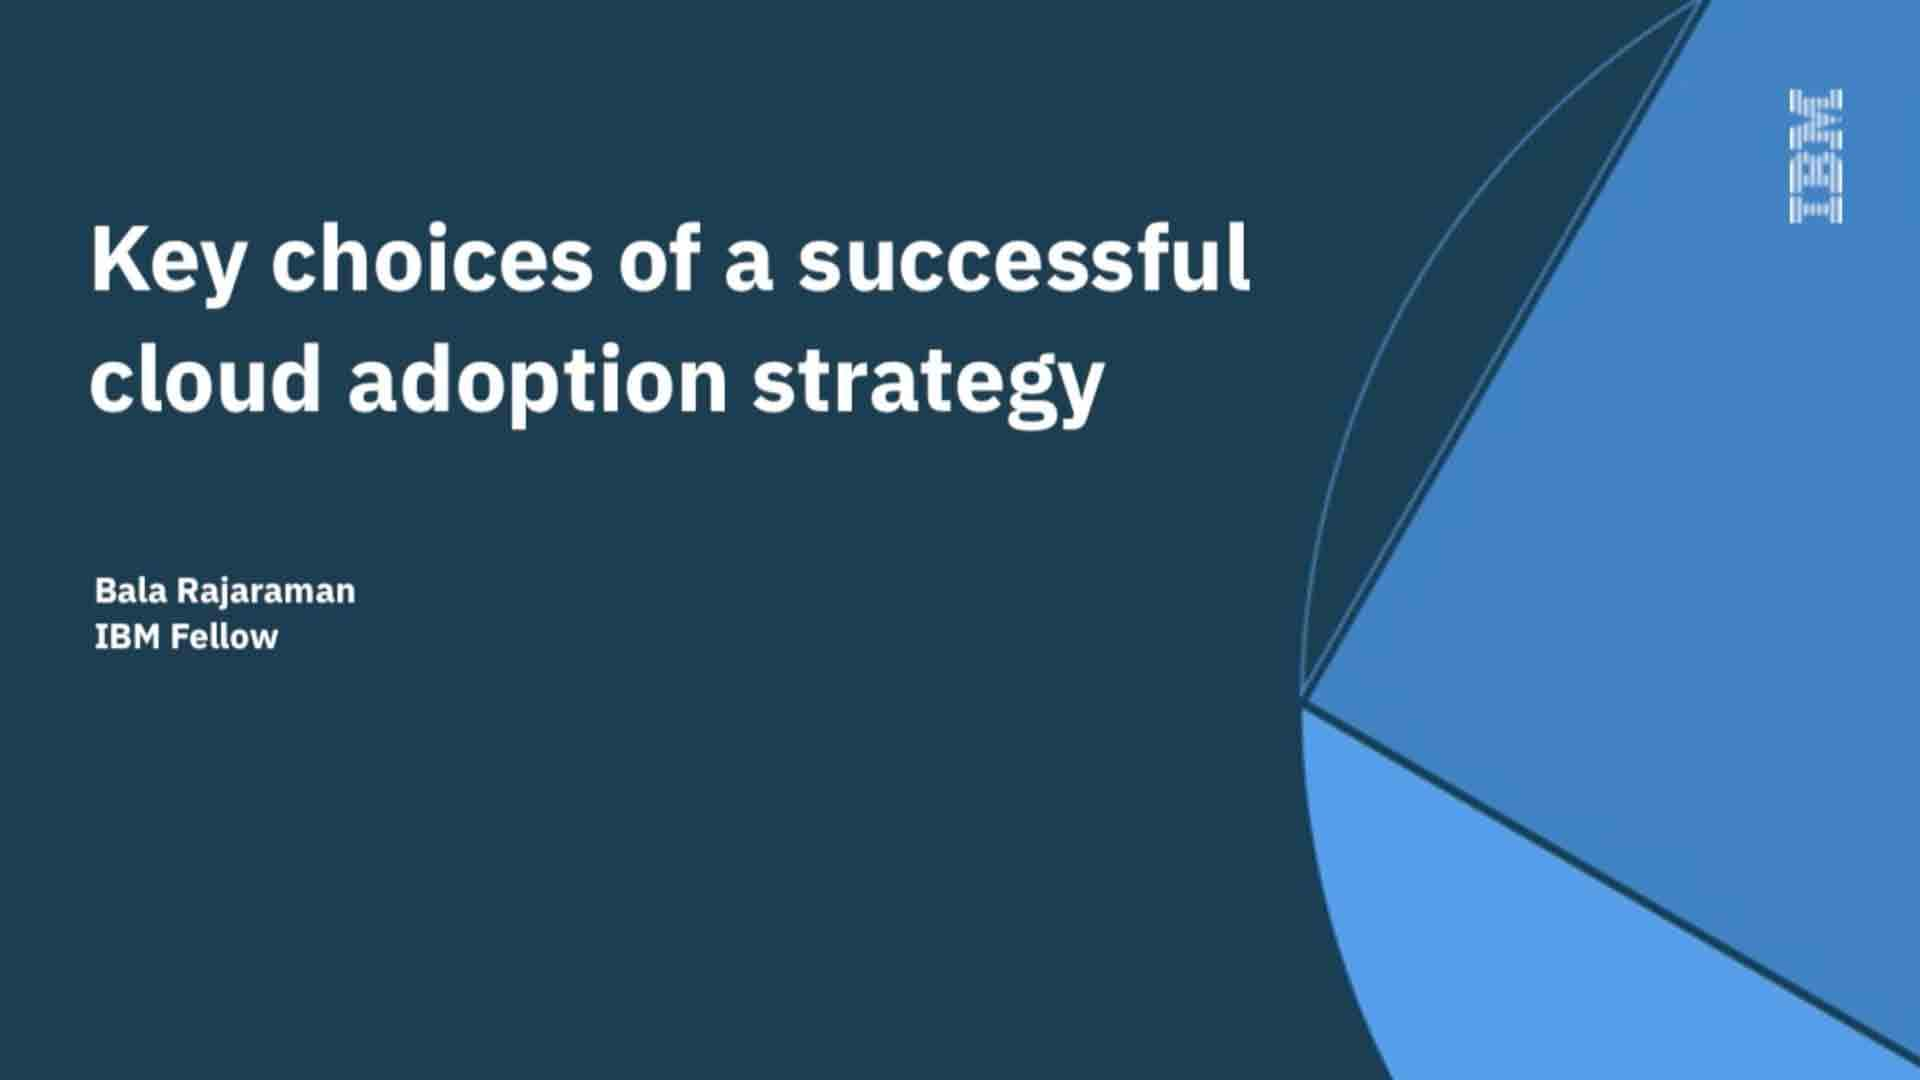 Key choices of a successful cloud adoption strategy